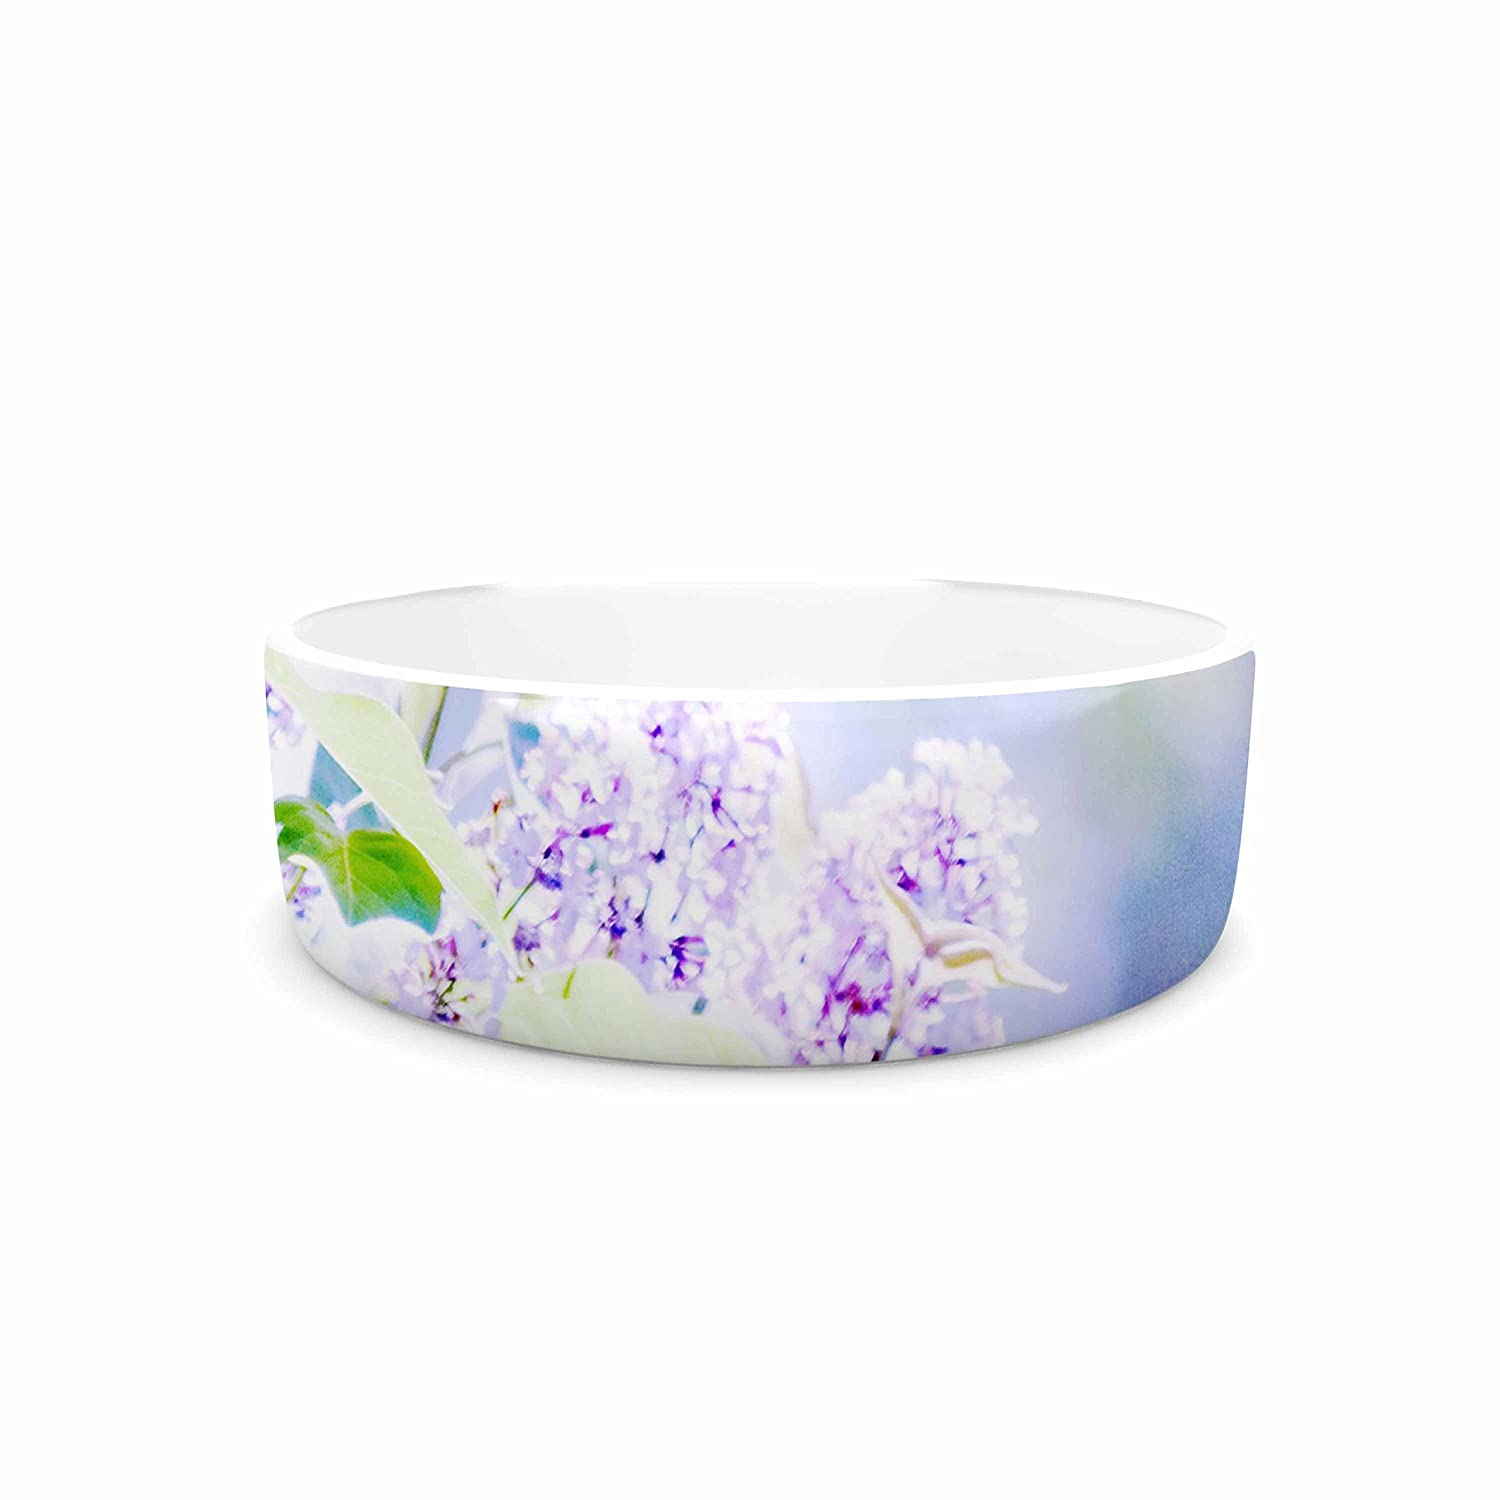 KESS InHouse Sylvia Coomes Hazy Purple Flowers  Lavender Nature Pet Bowl, 4.75